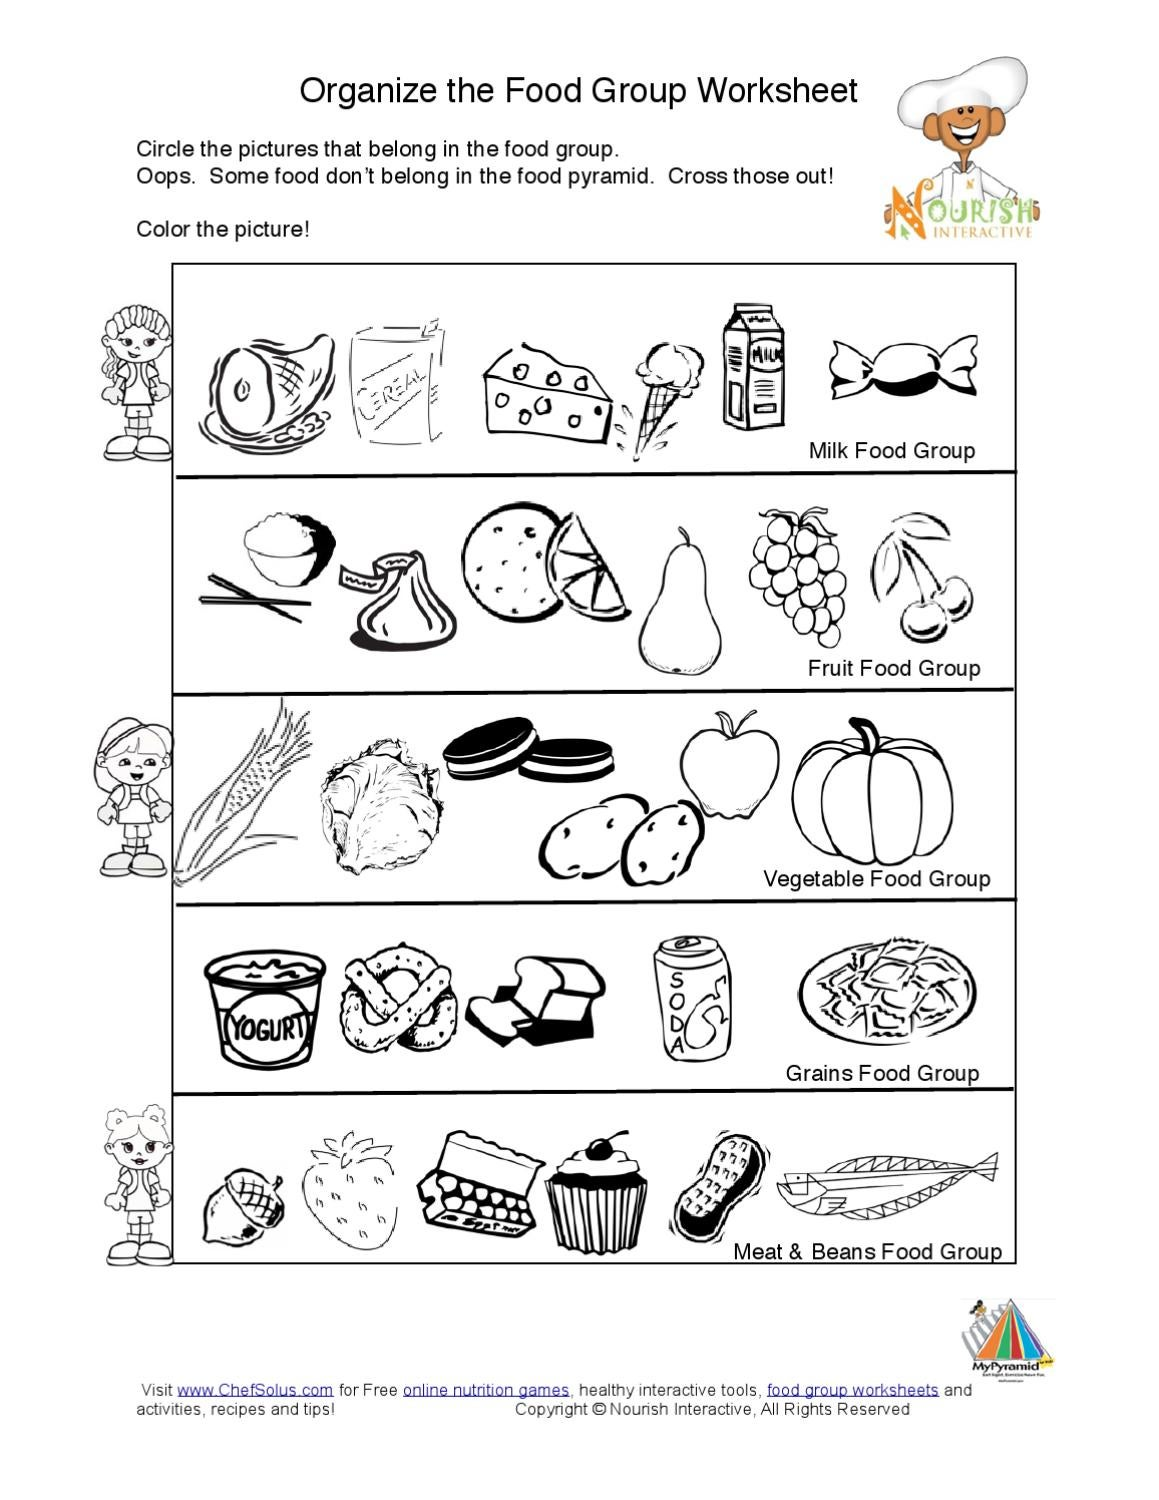 Worksheets Food Pyramid Worksheets kids food pyramid groups learning nutrition worksheet k 5 elementary school by nieves hita issuu